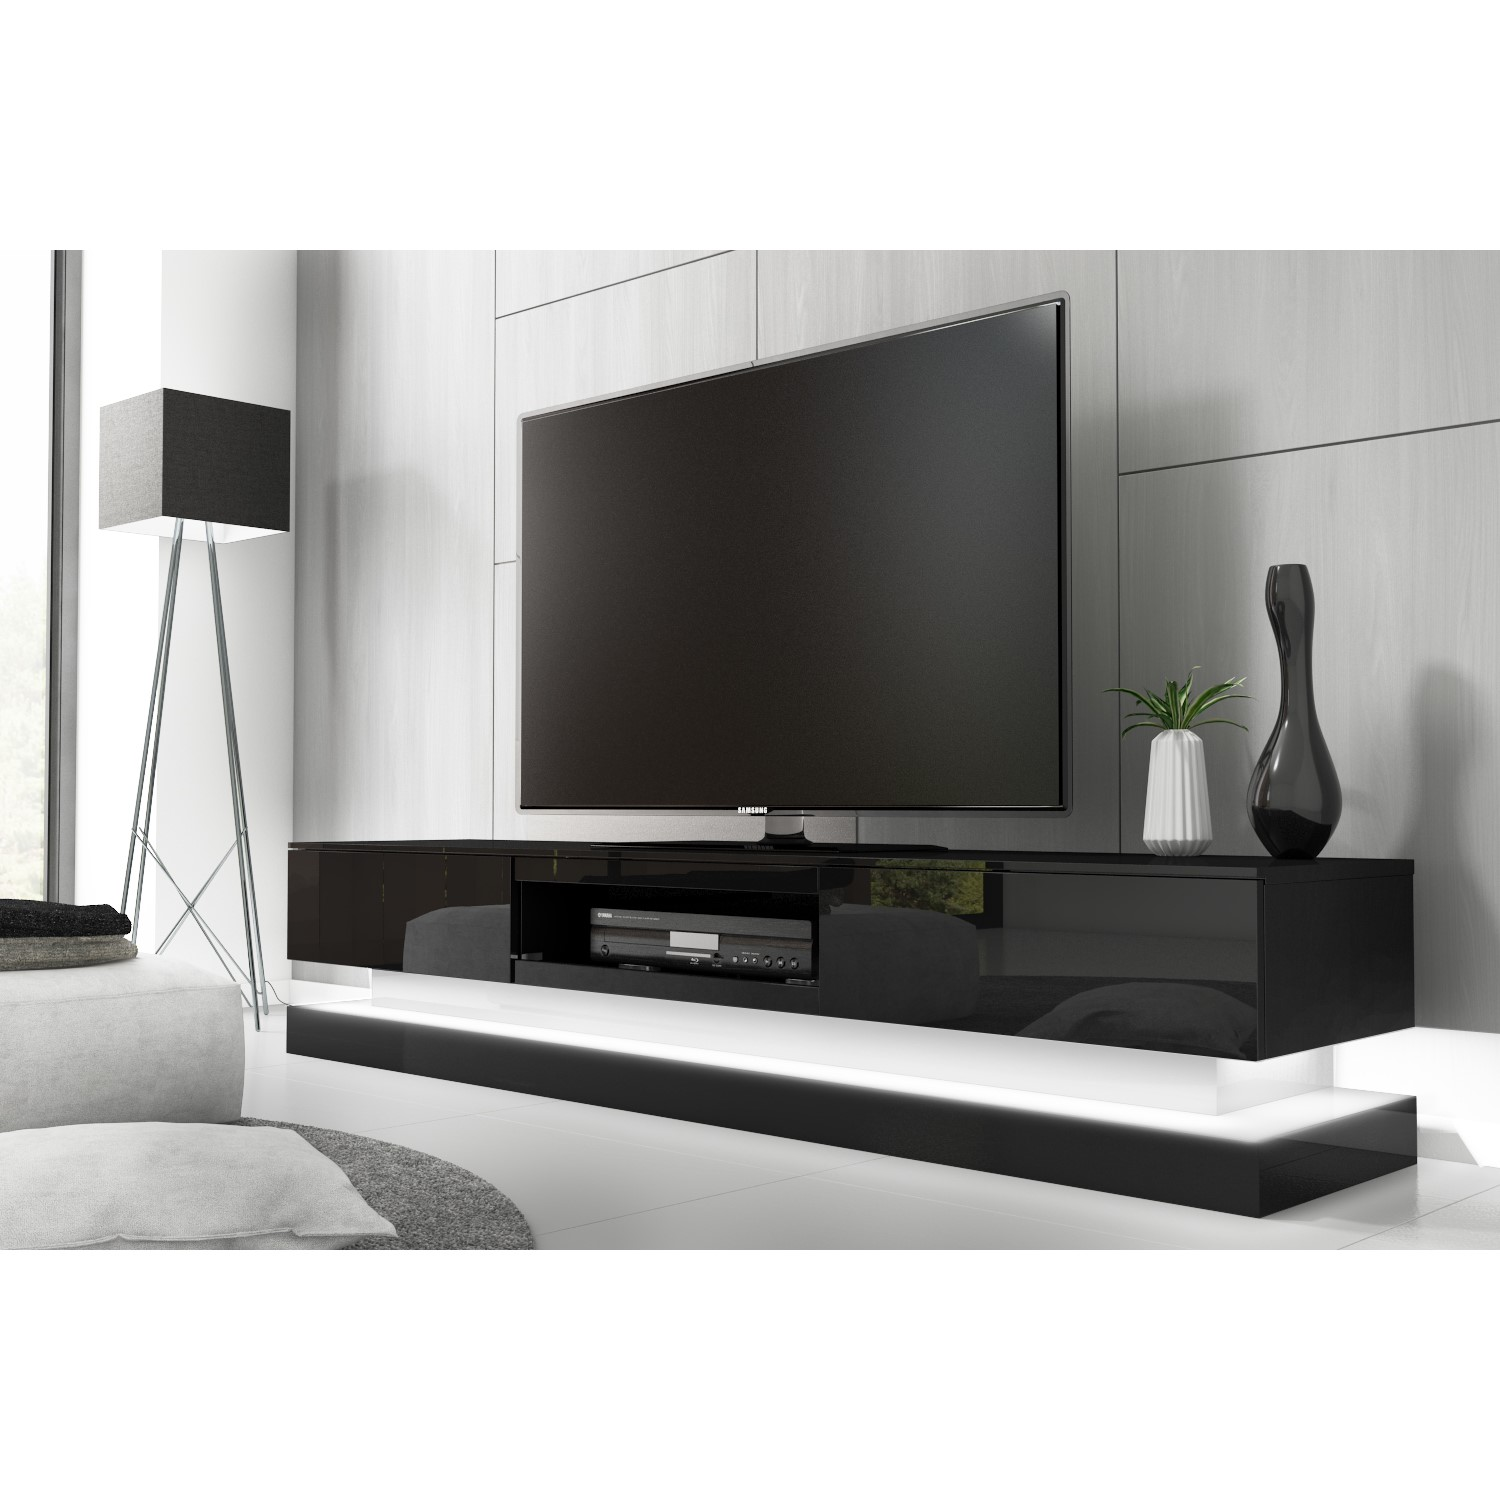 Charmant Evoque Black High Gloss TV Unit With Lower LED Lighting